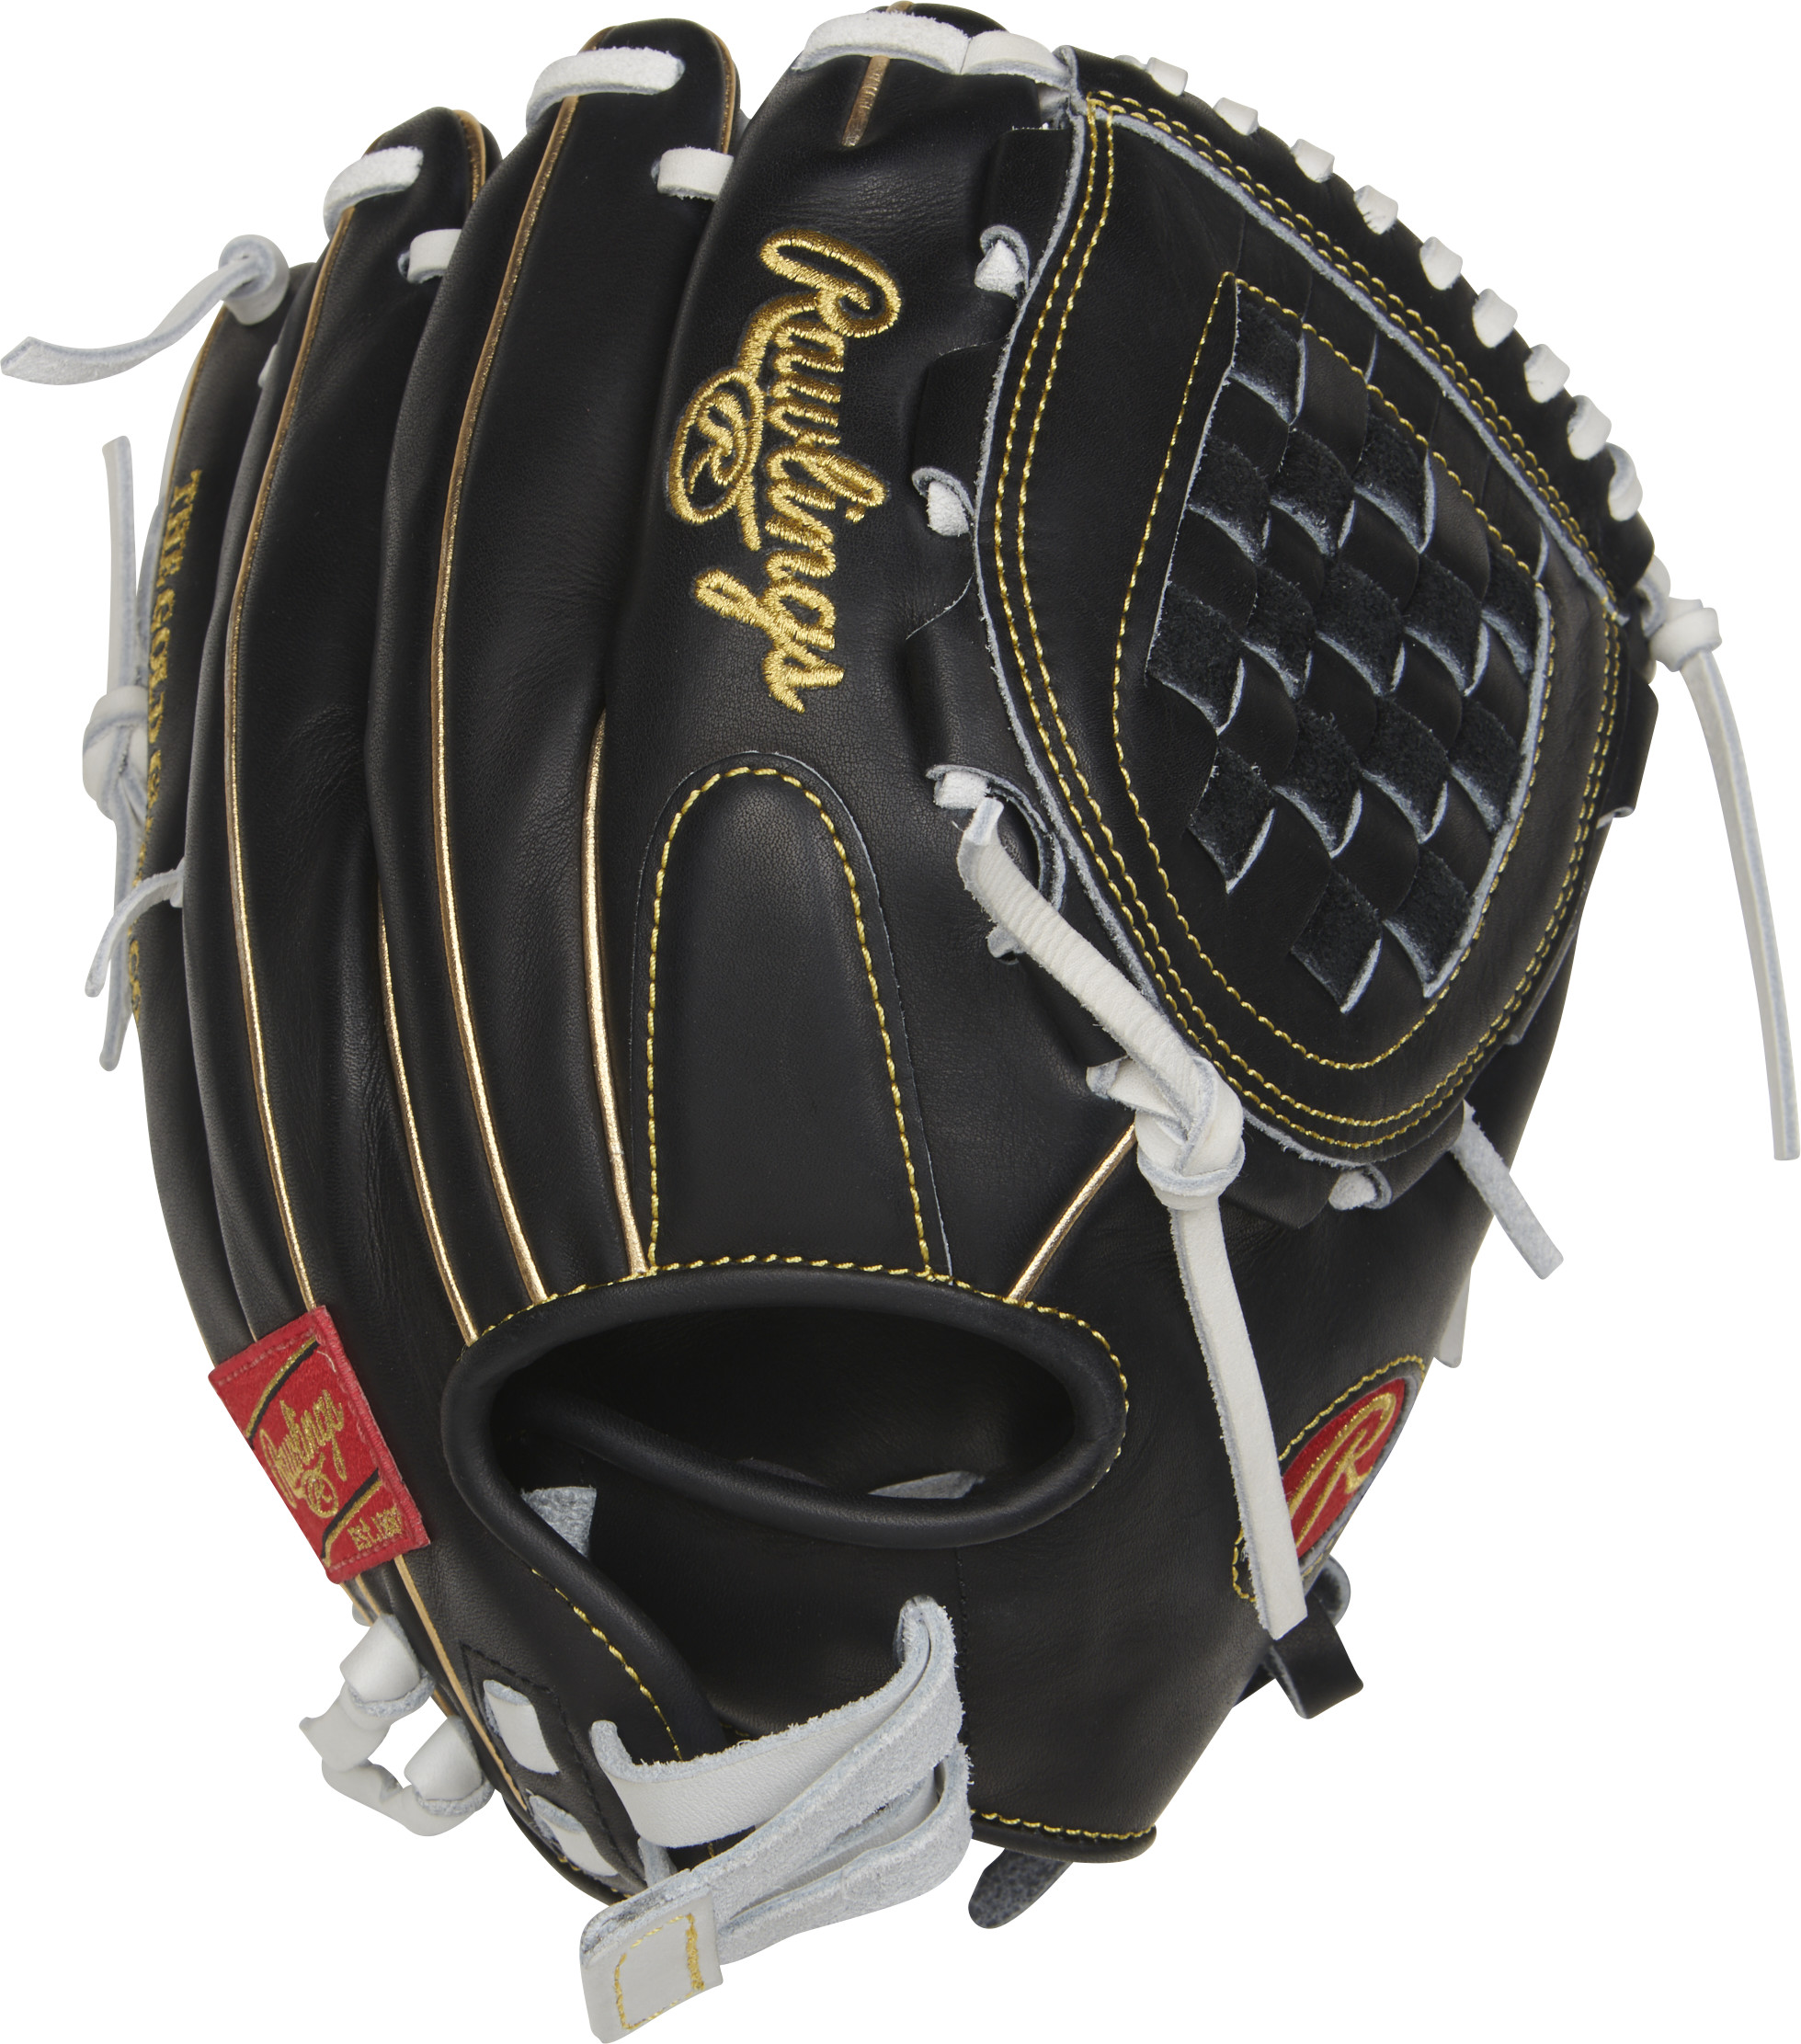 http://www.bestbatdeals.com/images/gloves/rawlings/PRO120SB-3BW-2.jpg